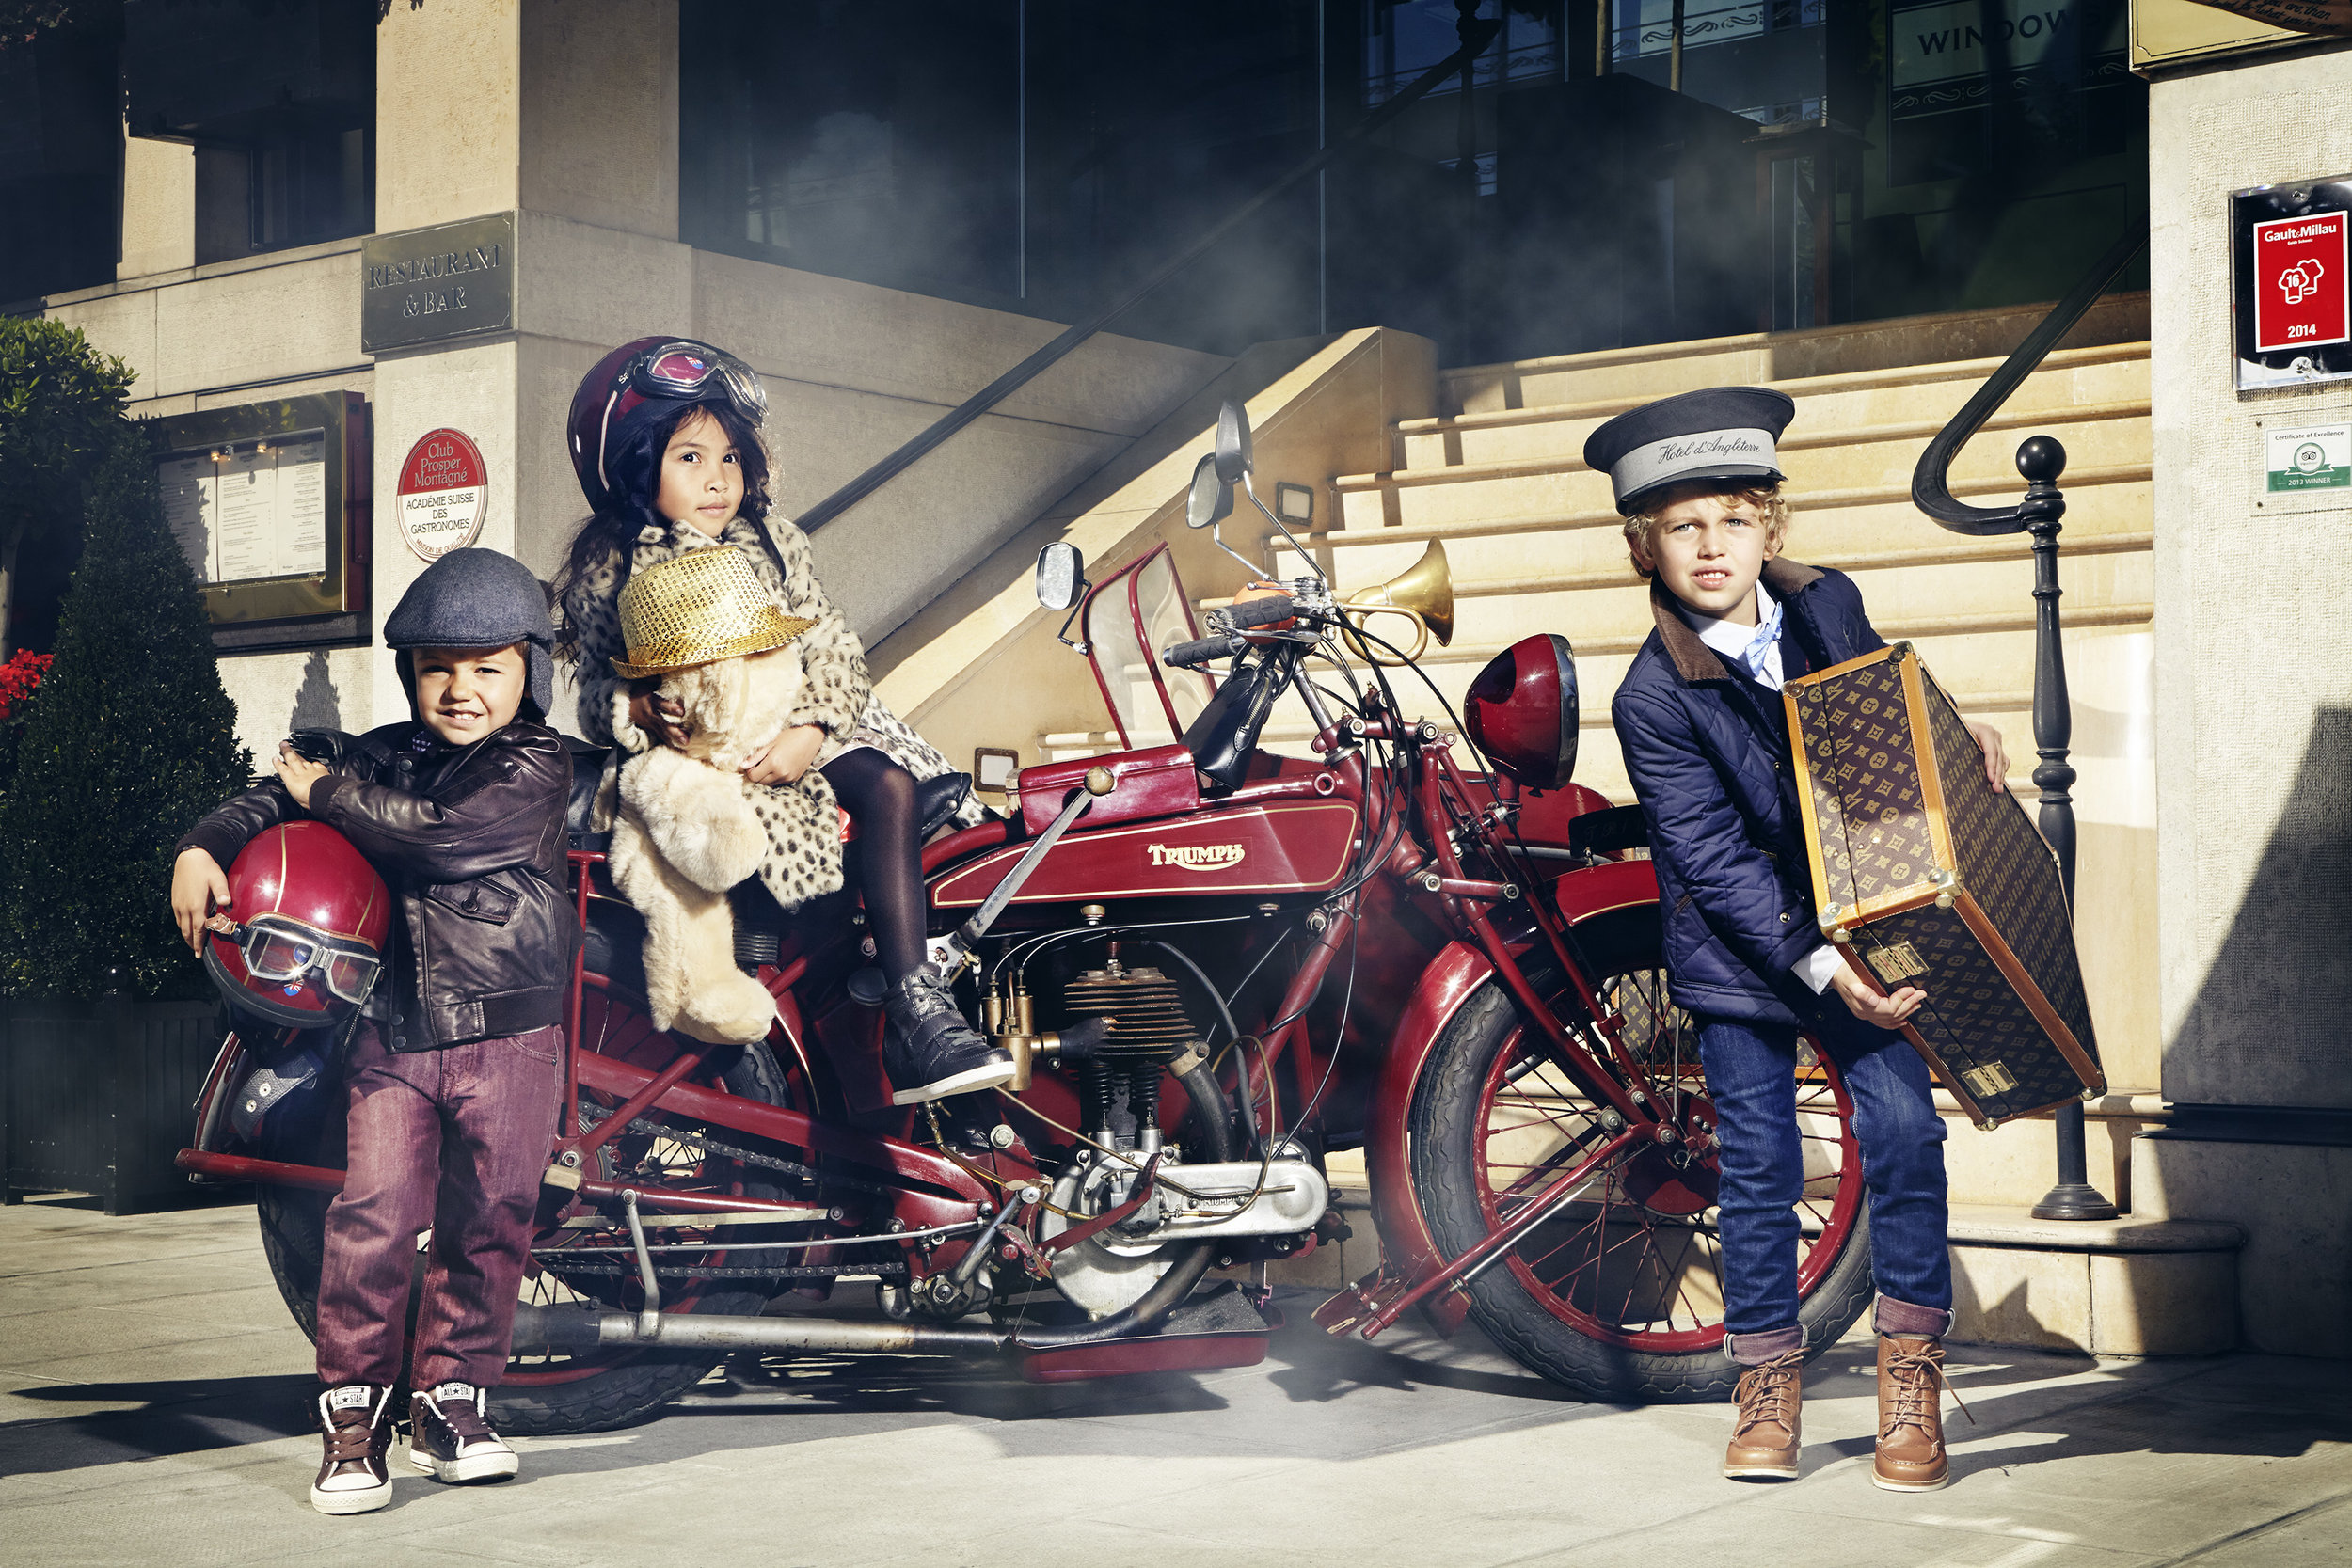 Ilve Little - kides on motorbike with luggage